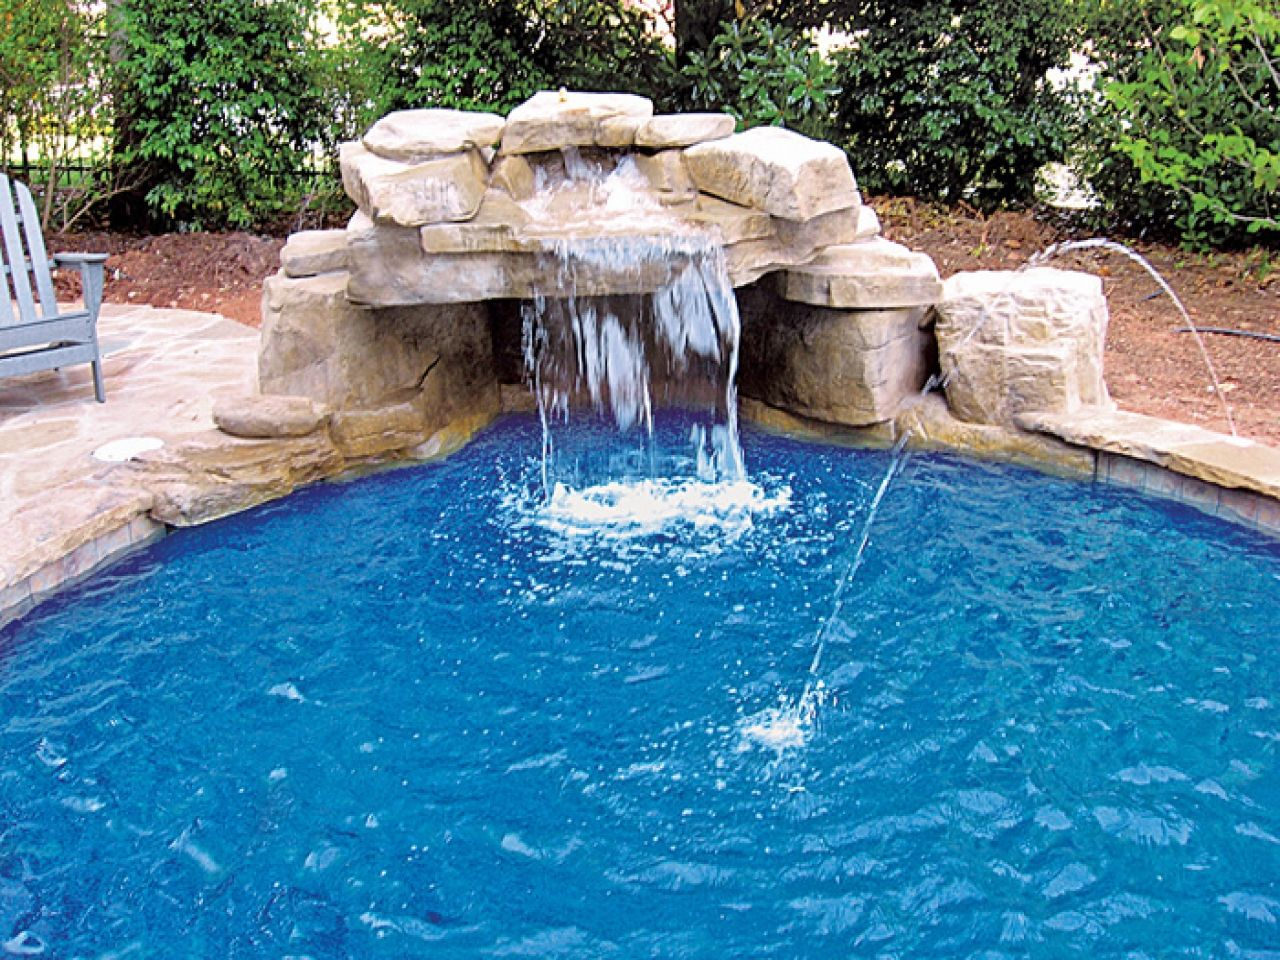 Pools Swimming Pool Clipart With Swimming Pool Design And Waterfall Pool Rock Waterfall Designs Outd Pool Waterfall Swimming Pool Waterfall Pool Water Features